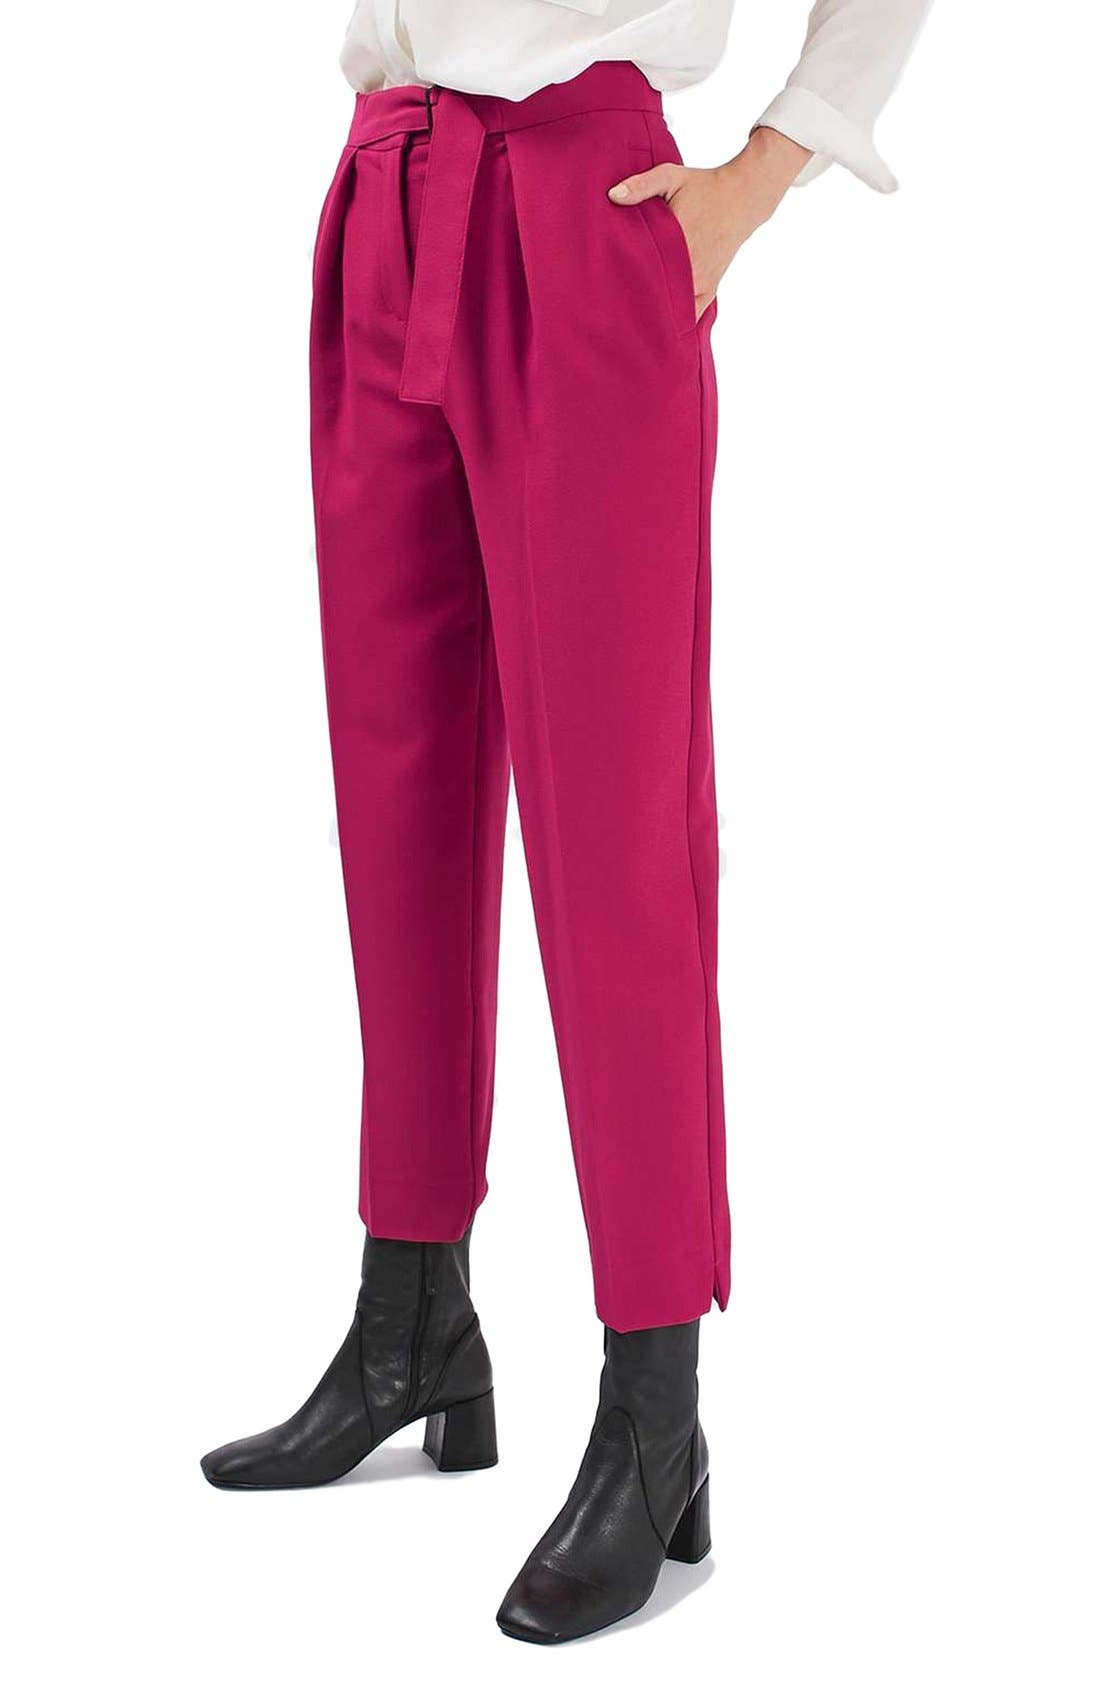 Alternate Image 1 Selected - Topshop Slider Utility Peg Trousers (Regular & Petite)